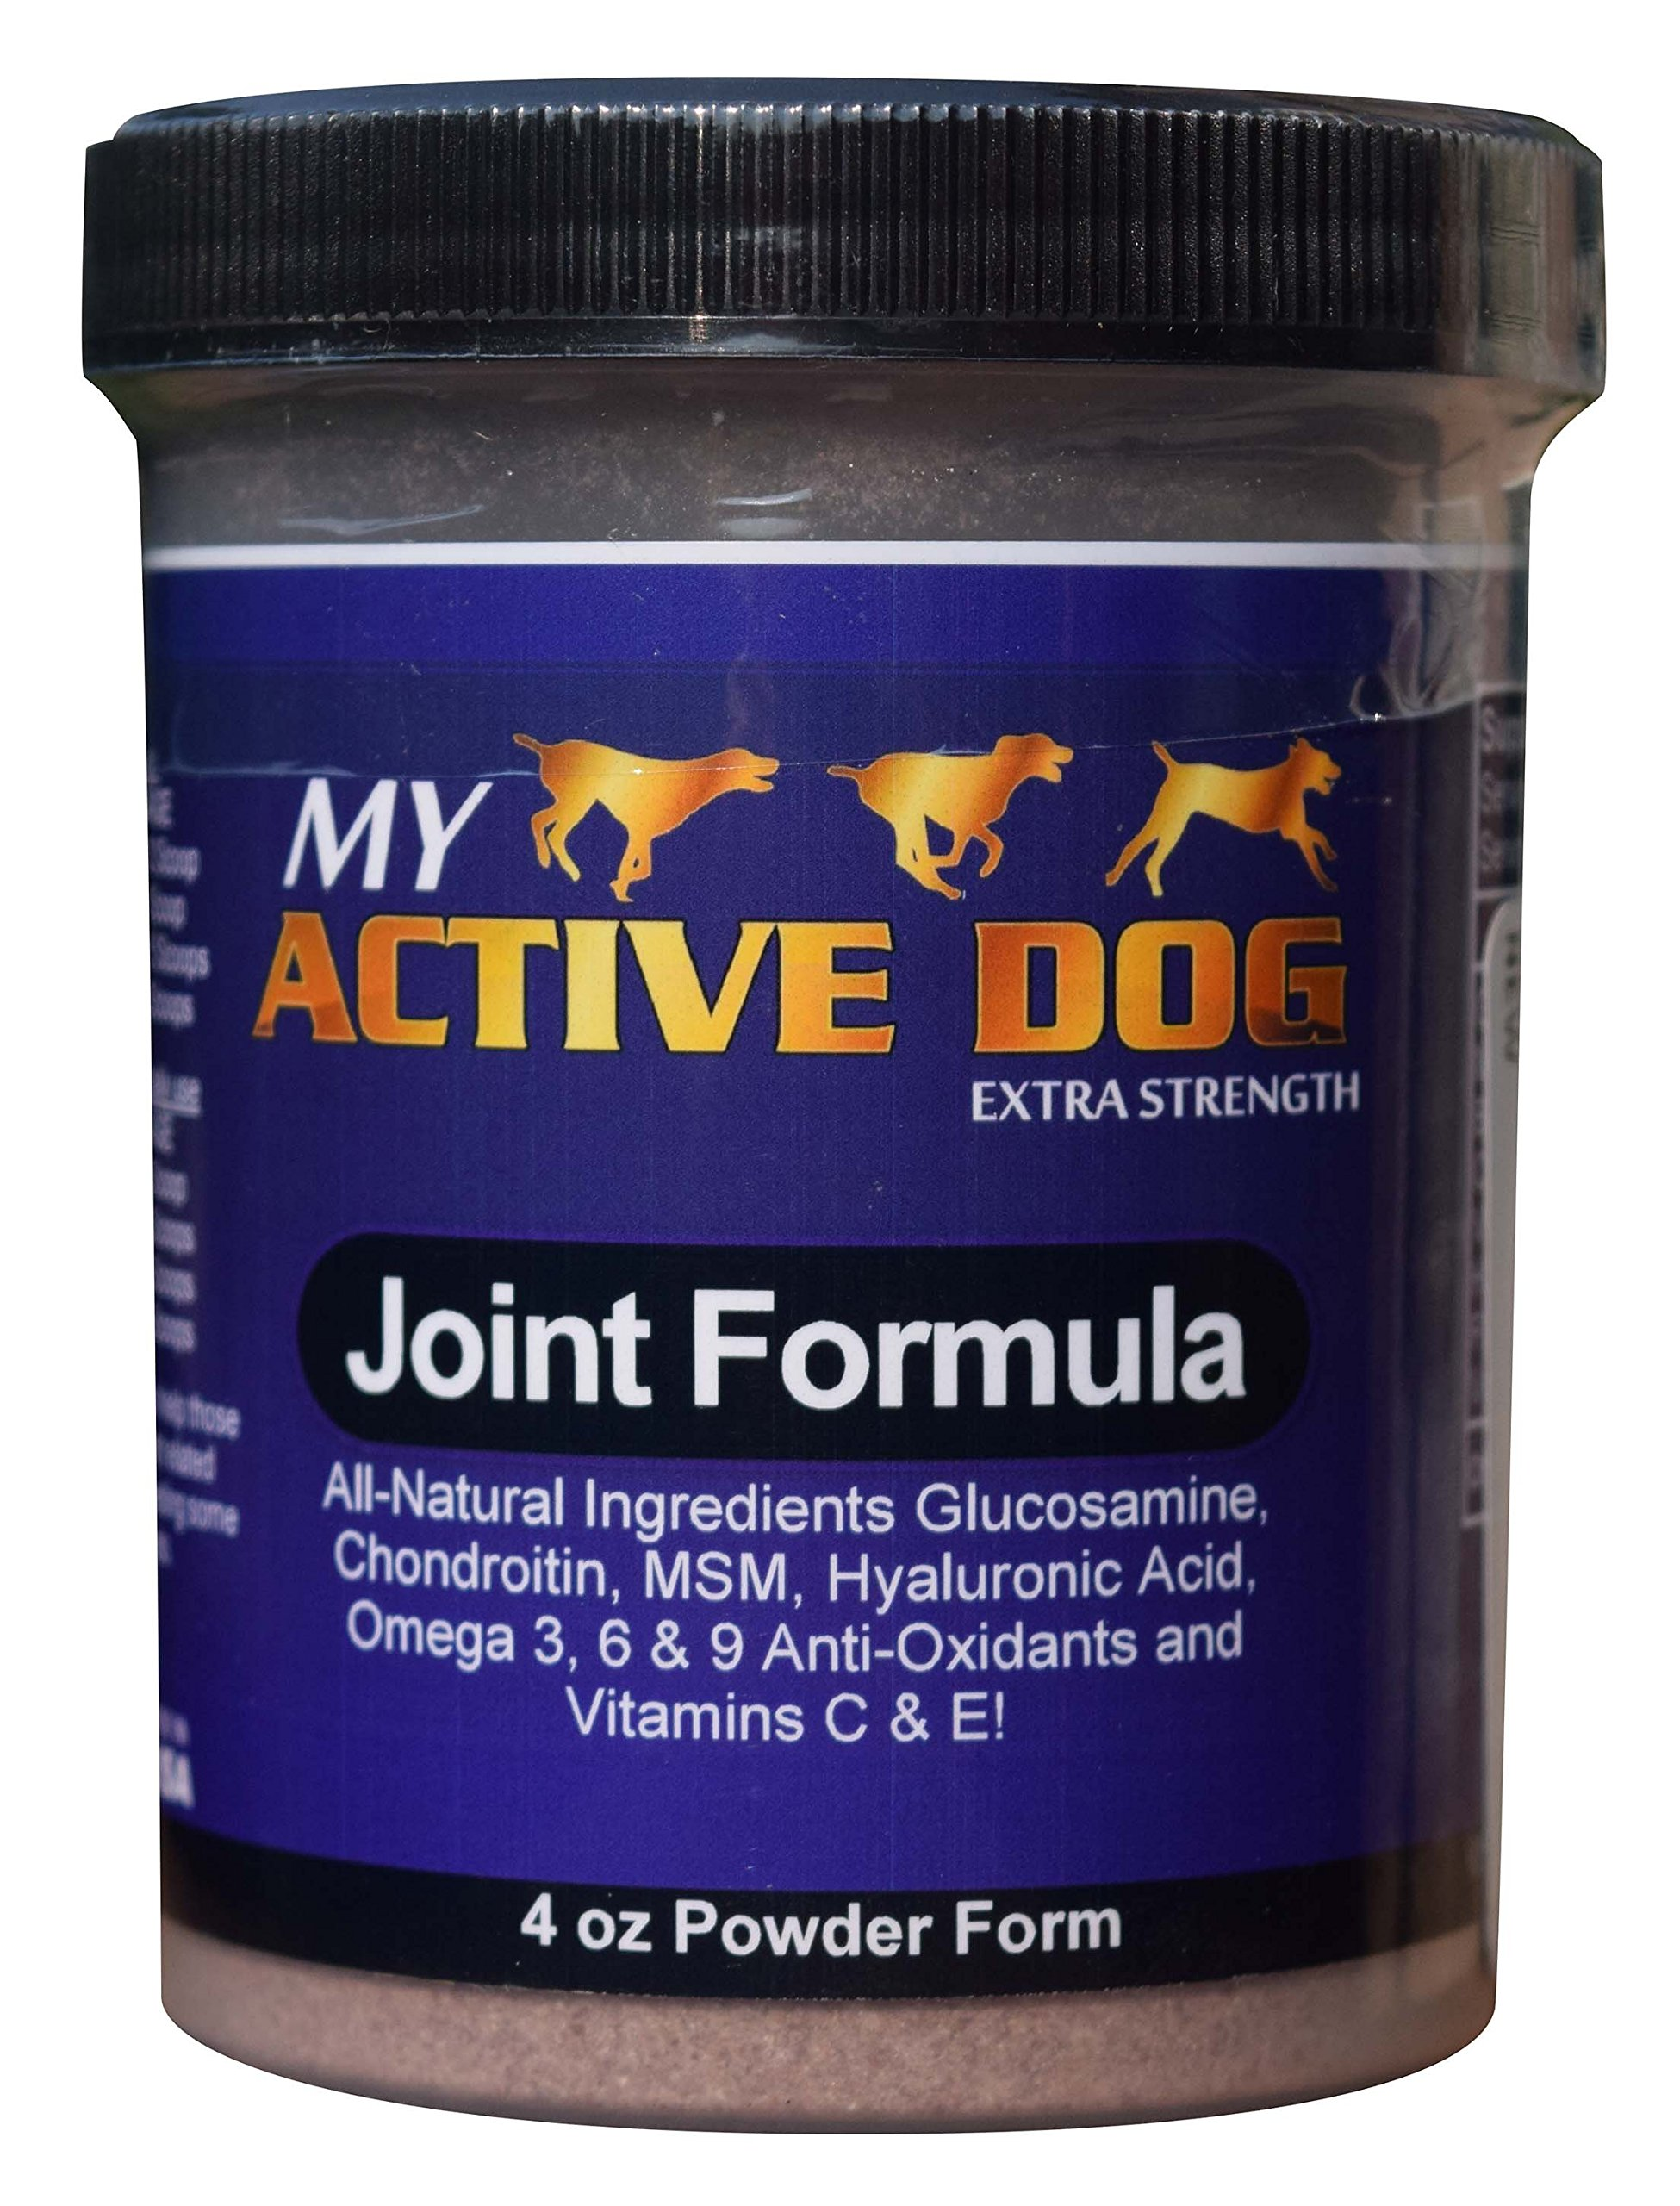 My Active Dog Glucosamine – Best for Joint Support, Reduces Pain - Made in USA All-Natural Ingredients w/Chondroitin, MSM, Hyaluronic Acid, Vitamins C&E, Anti-oxidants & Omega3 - Includes Measure